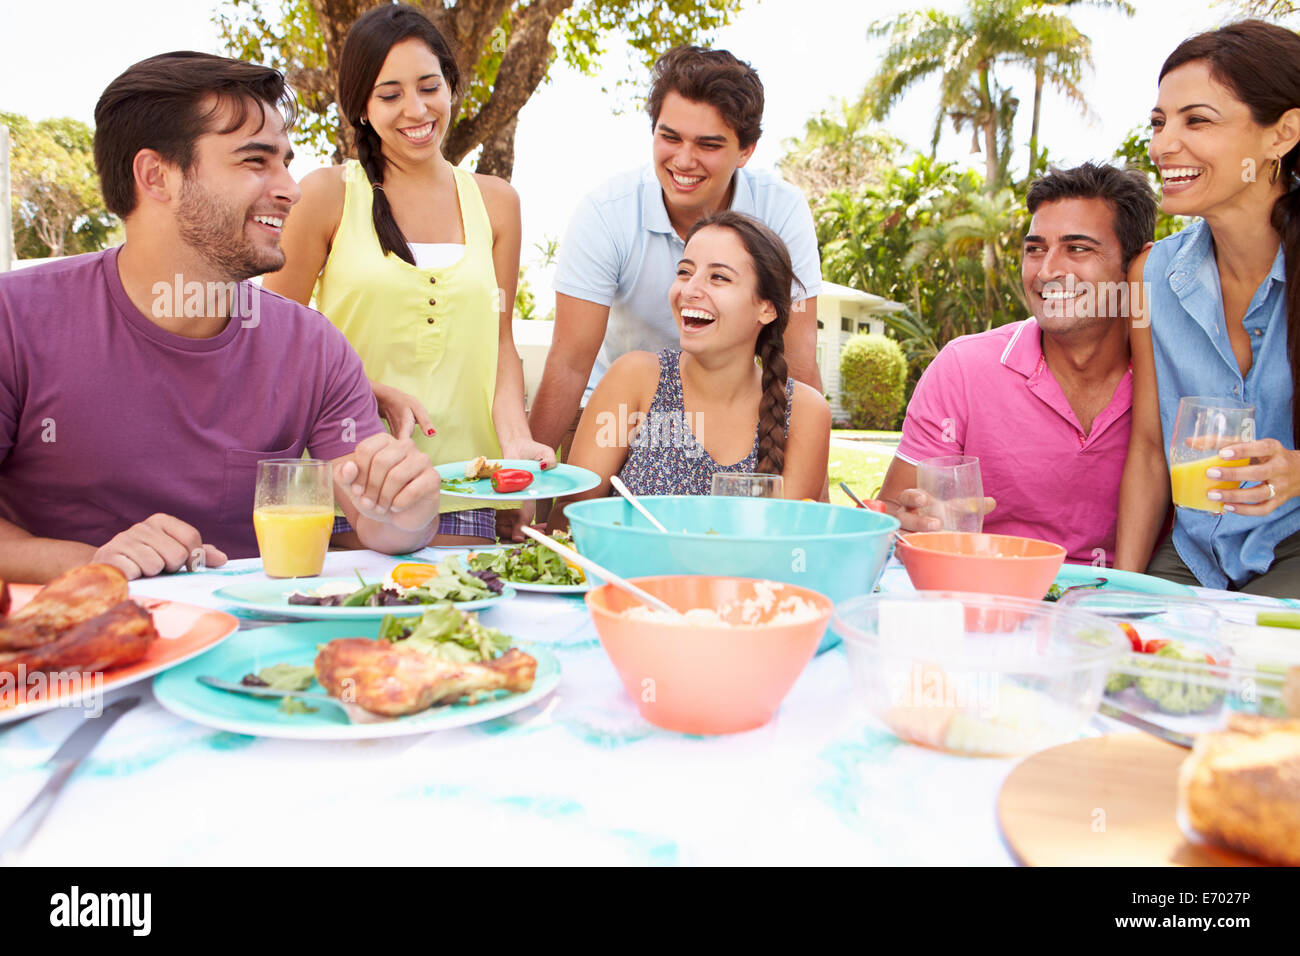 Group of Friends Celebrating Enjoying meal in garden at home Photo Stock